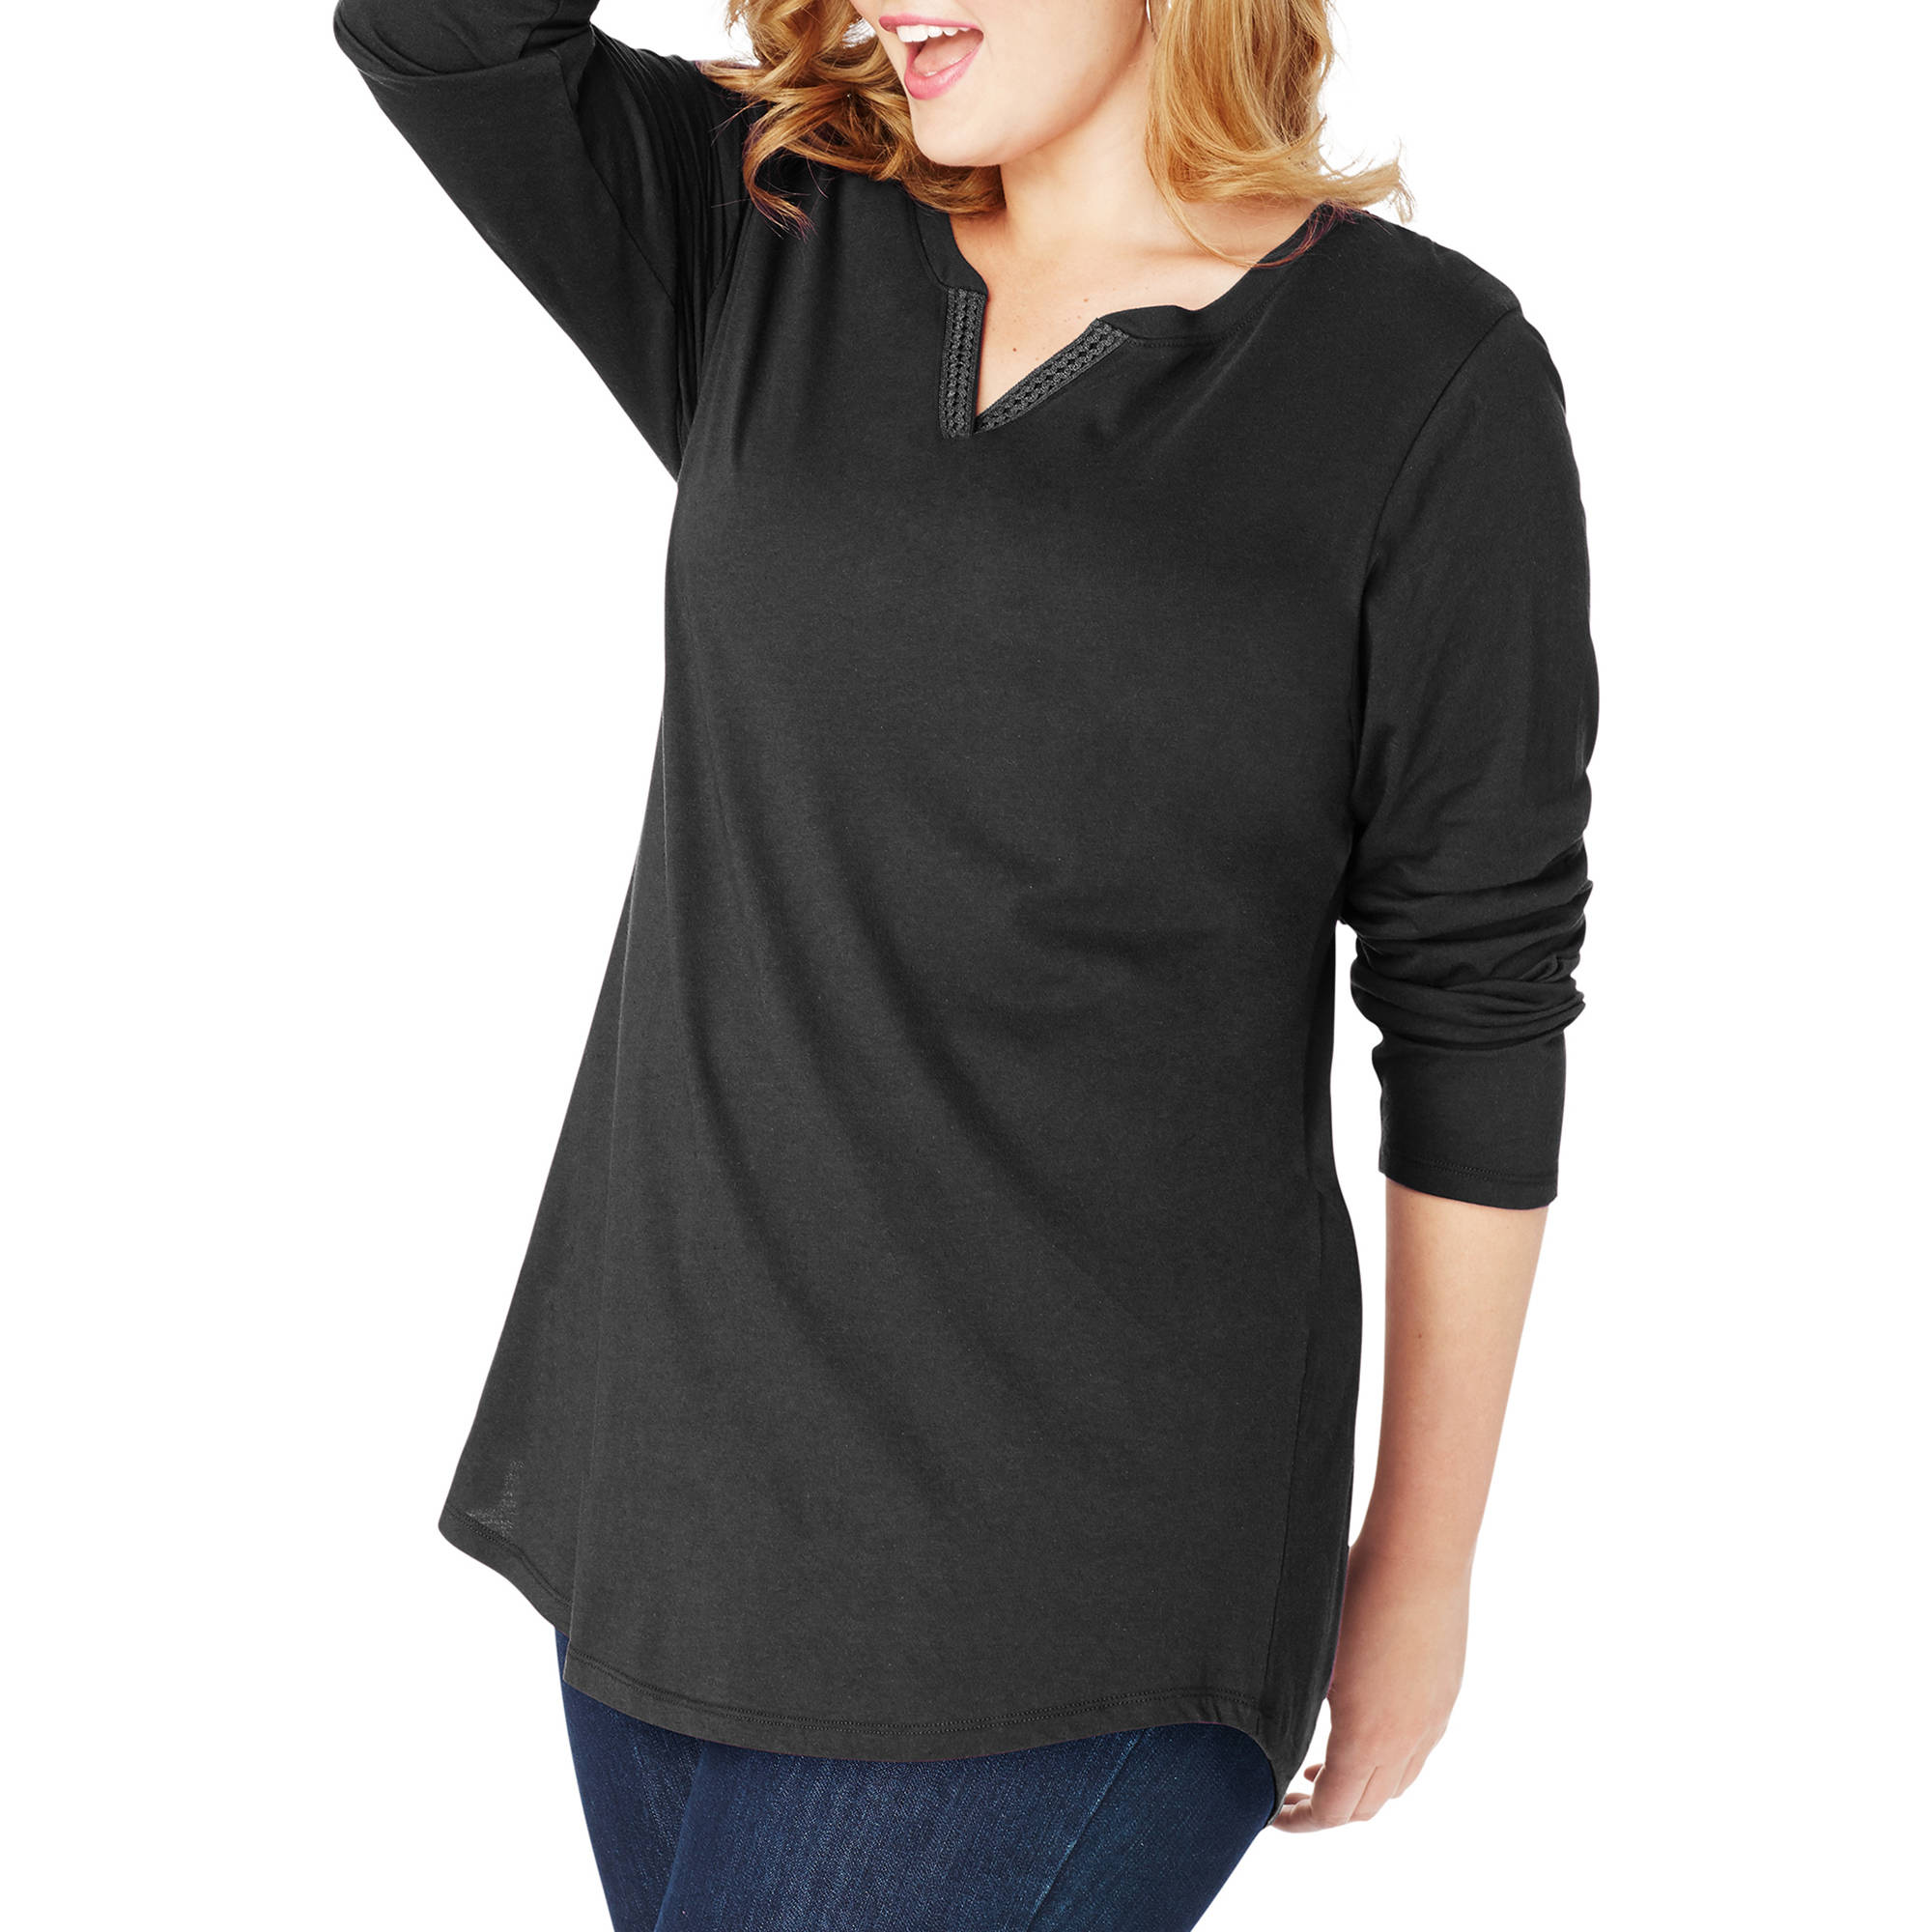 Plus-Size Women's Lightweight Split V-neck Tunic